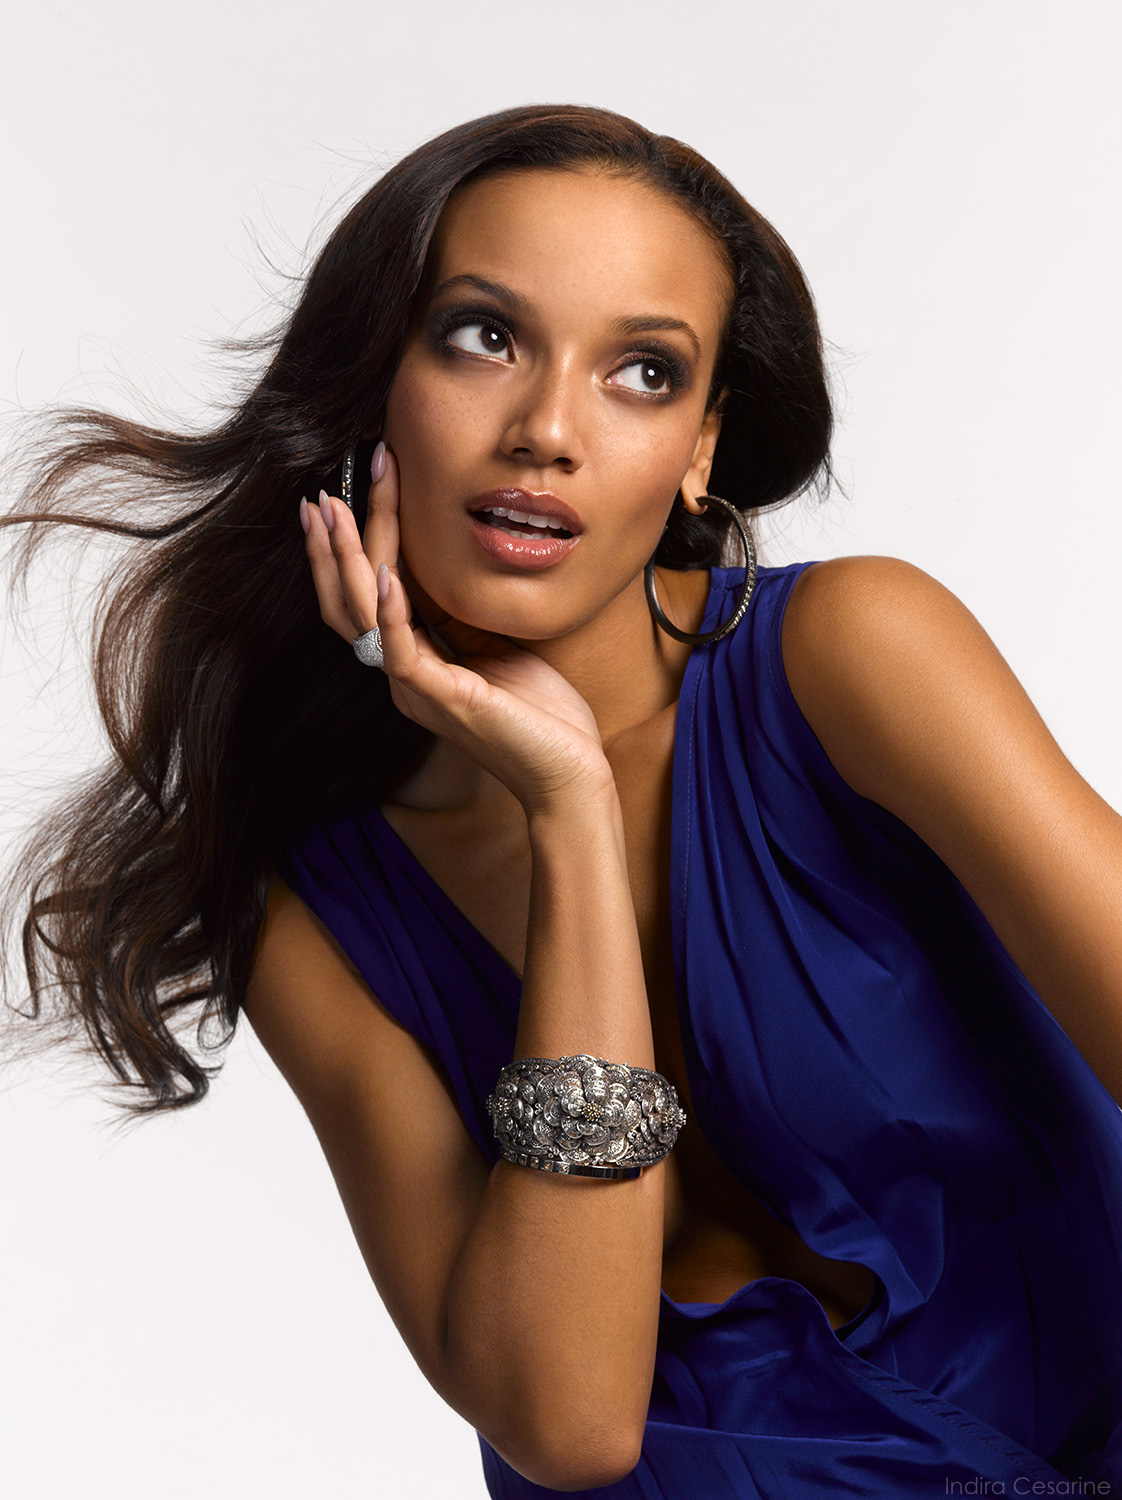 SELITA-EBANKS-Photography-by-Indira-Cesarine-011.jpg